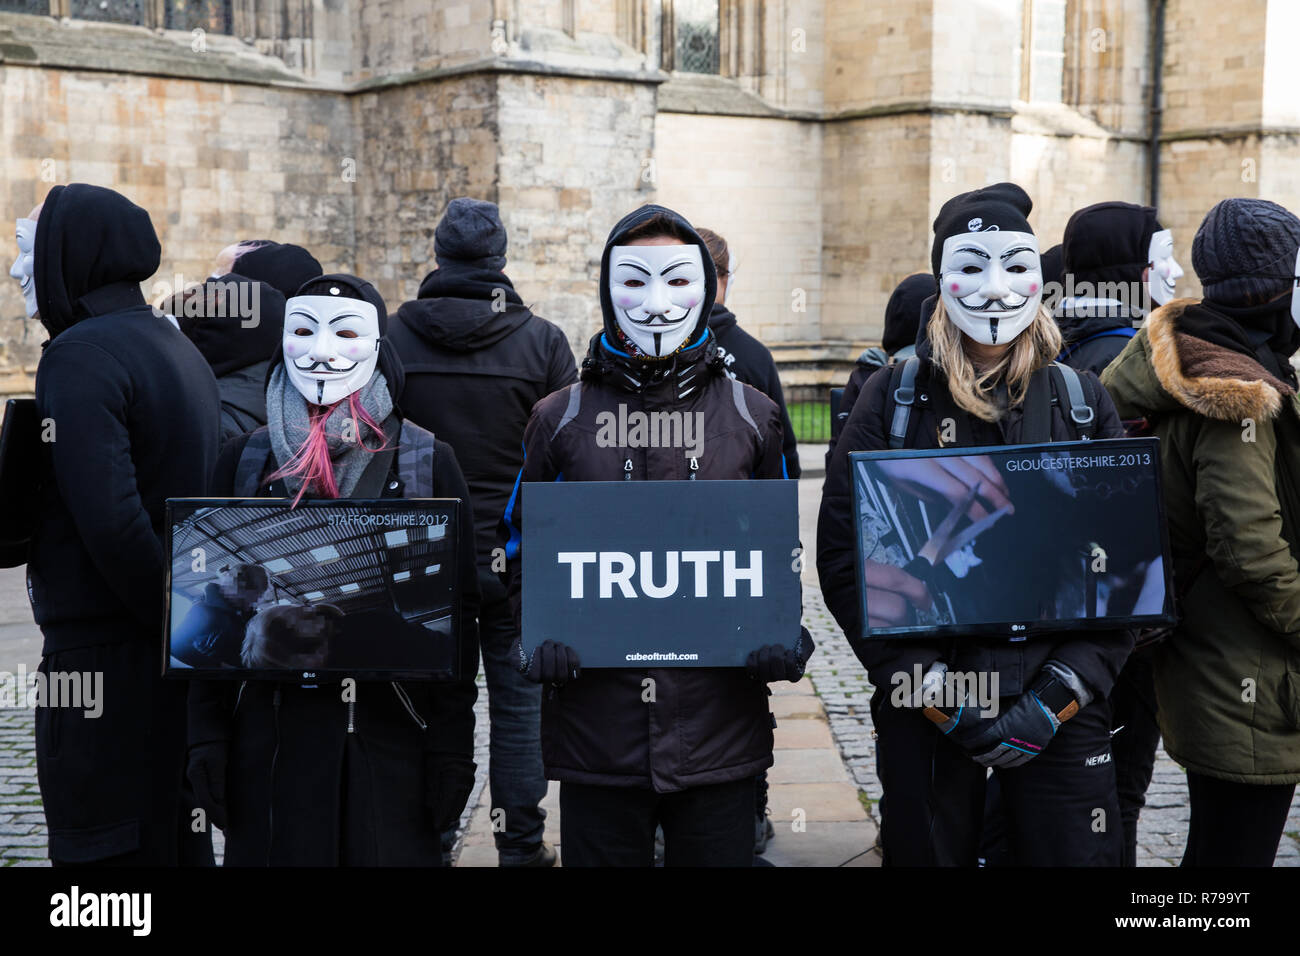 YORK, UK - DECEMBER 8, 2018.  Members of the Cube of Truth Vegan protest group in Guy Fawks masks and protesting about cruelty to animals. - Stock Image